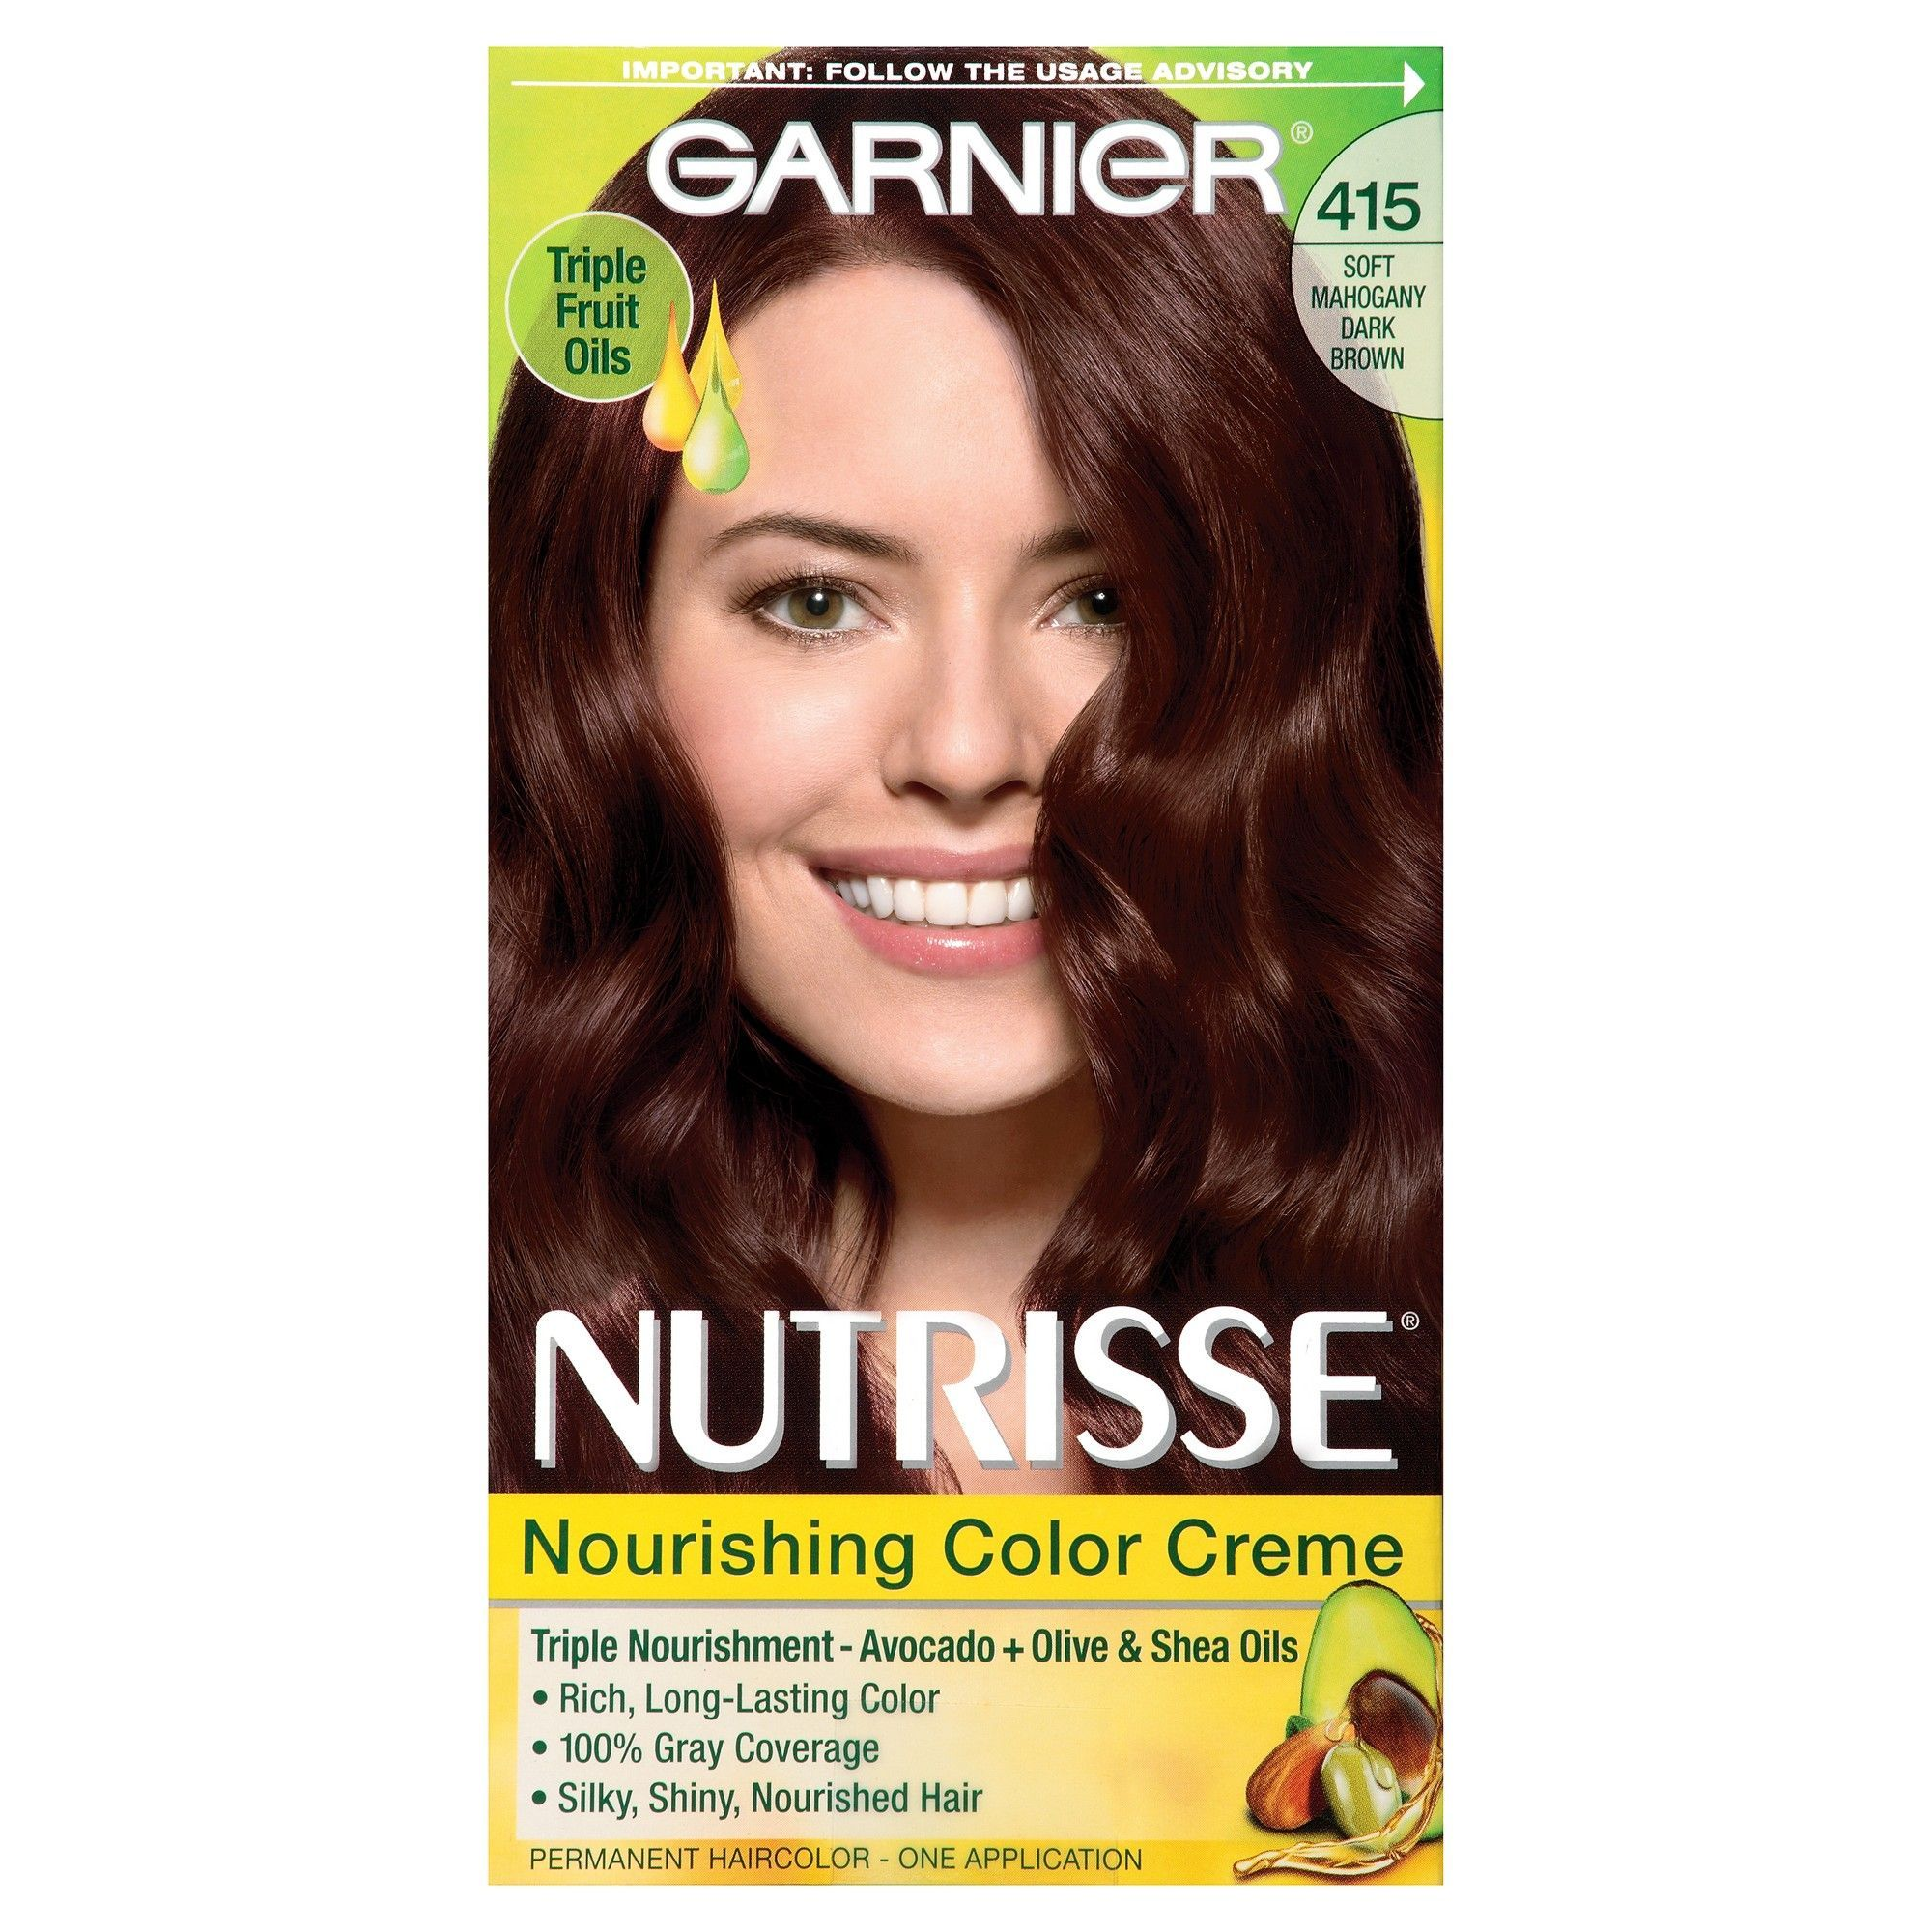 Garnier Nutrisse Nourishing Color Creme 415 Soft Mahogany Dark